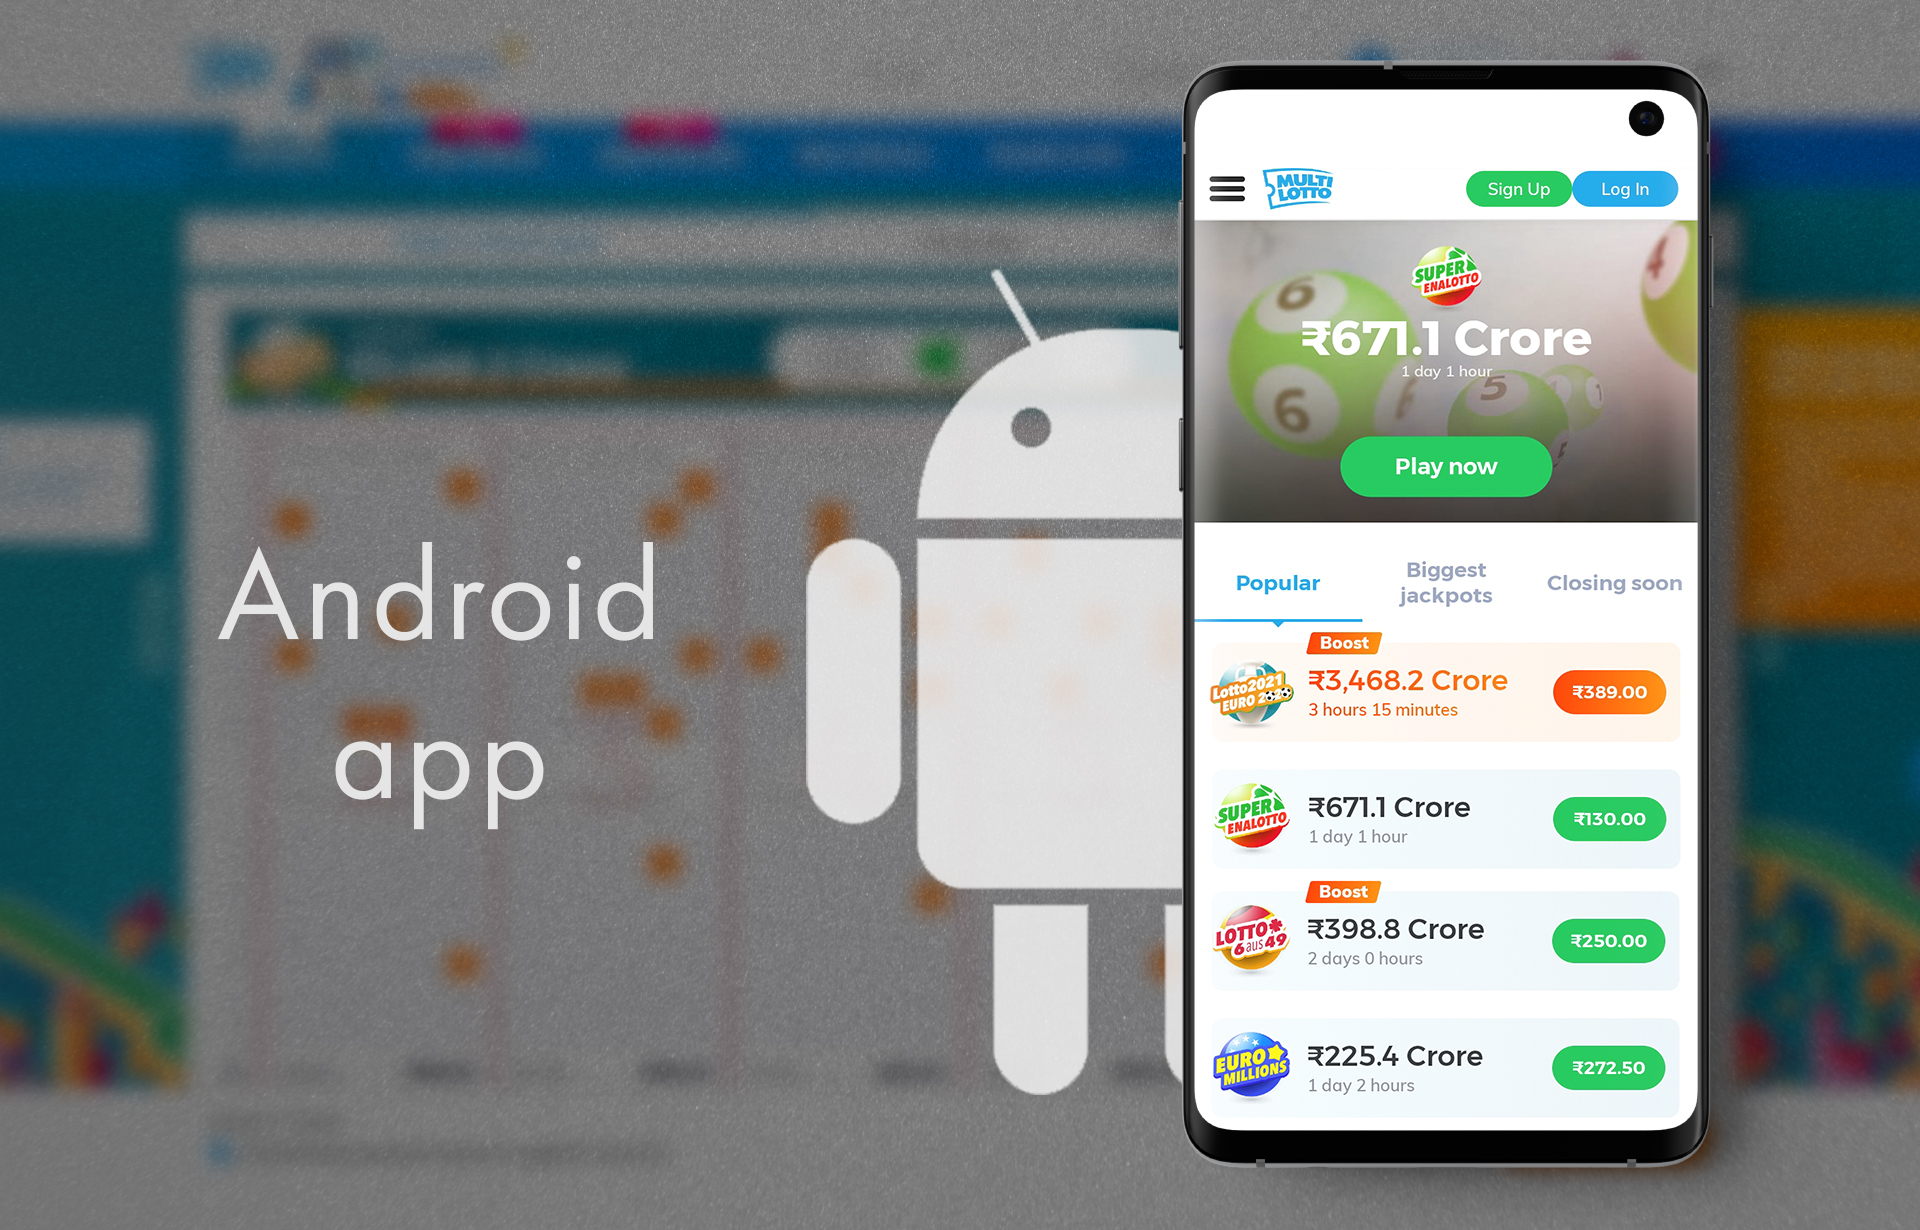 On the official page, you can download the Android app for your smartphone.